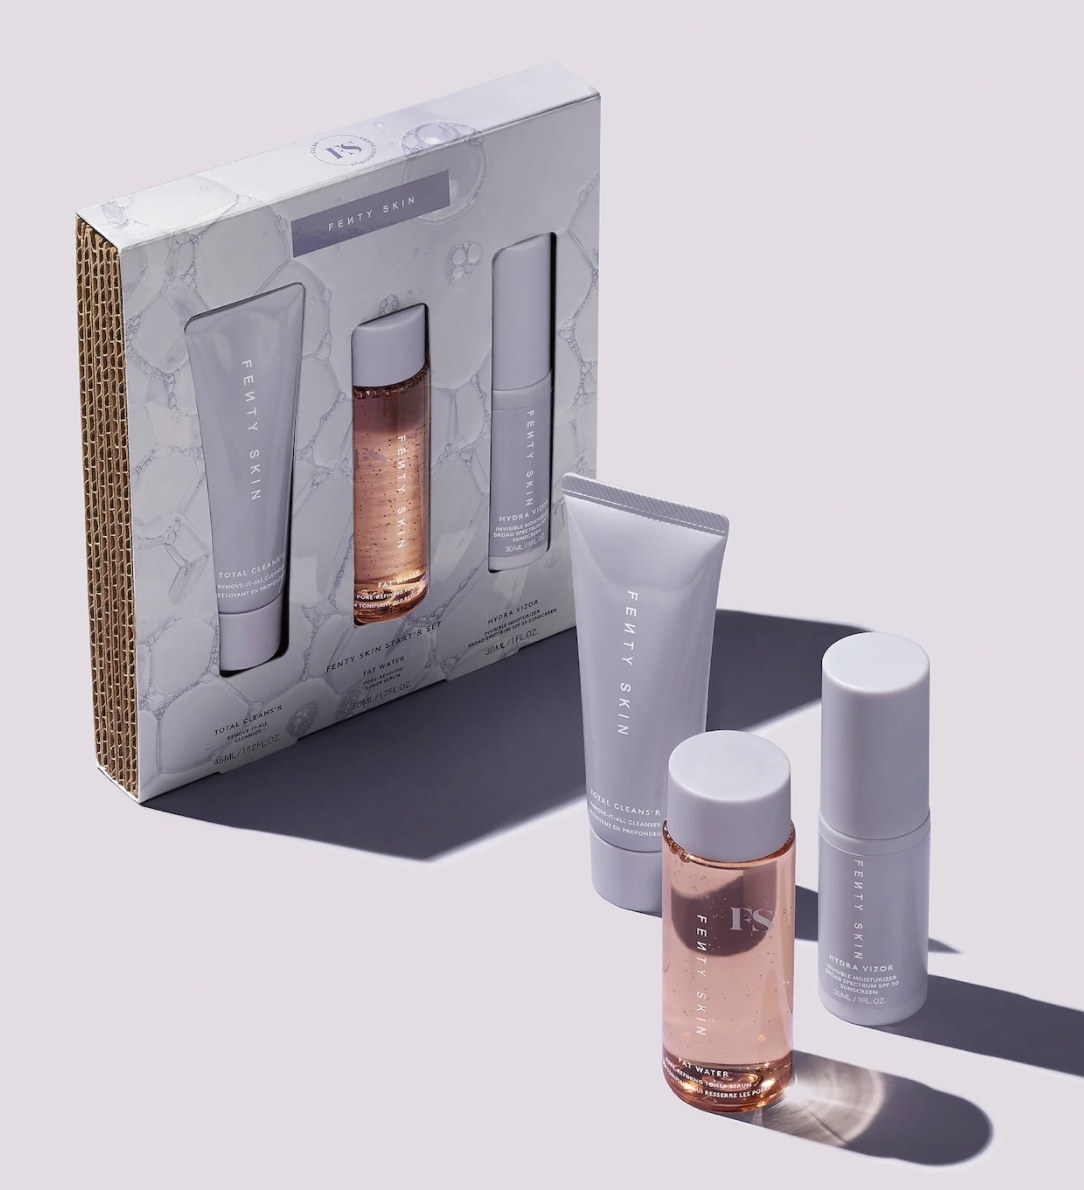 the fenty skin skincare set in its packaging